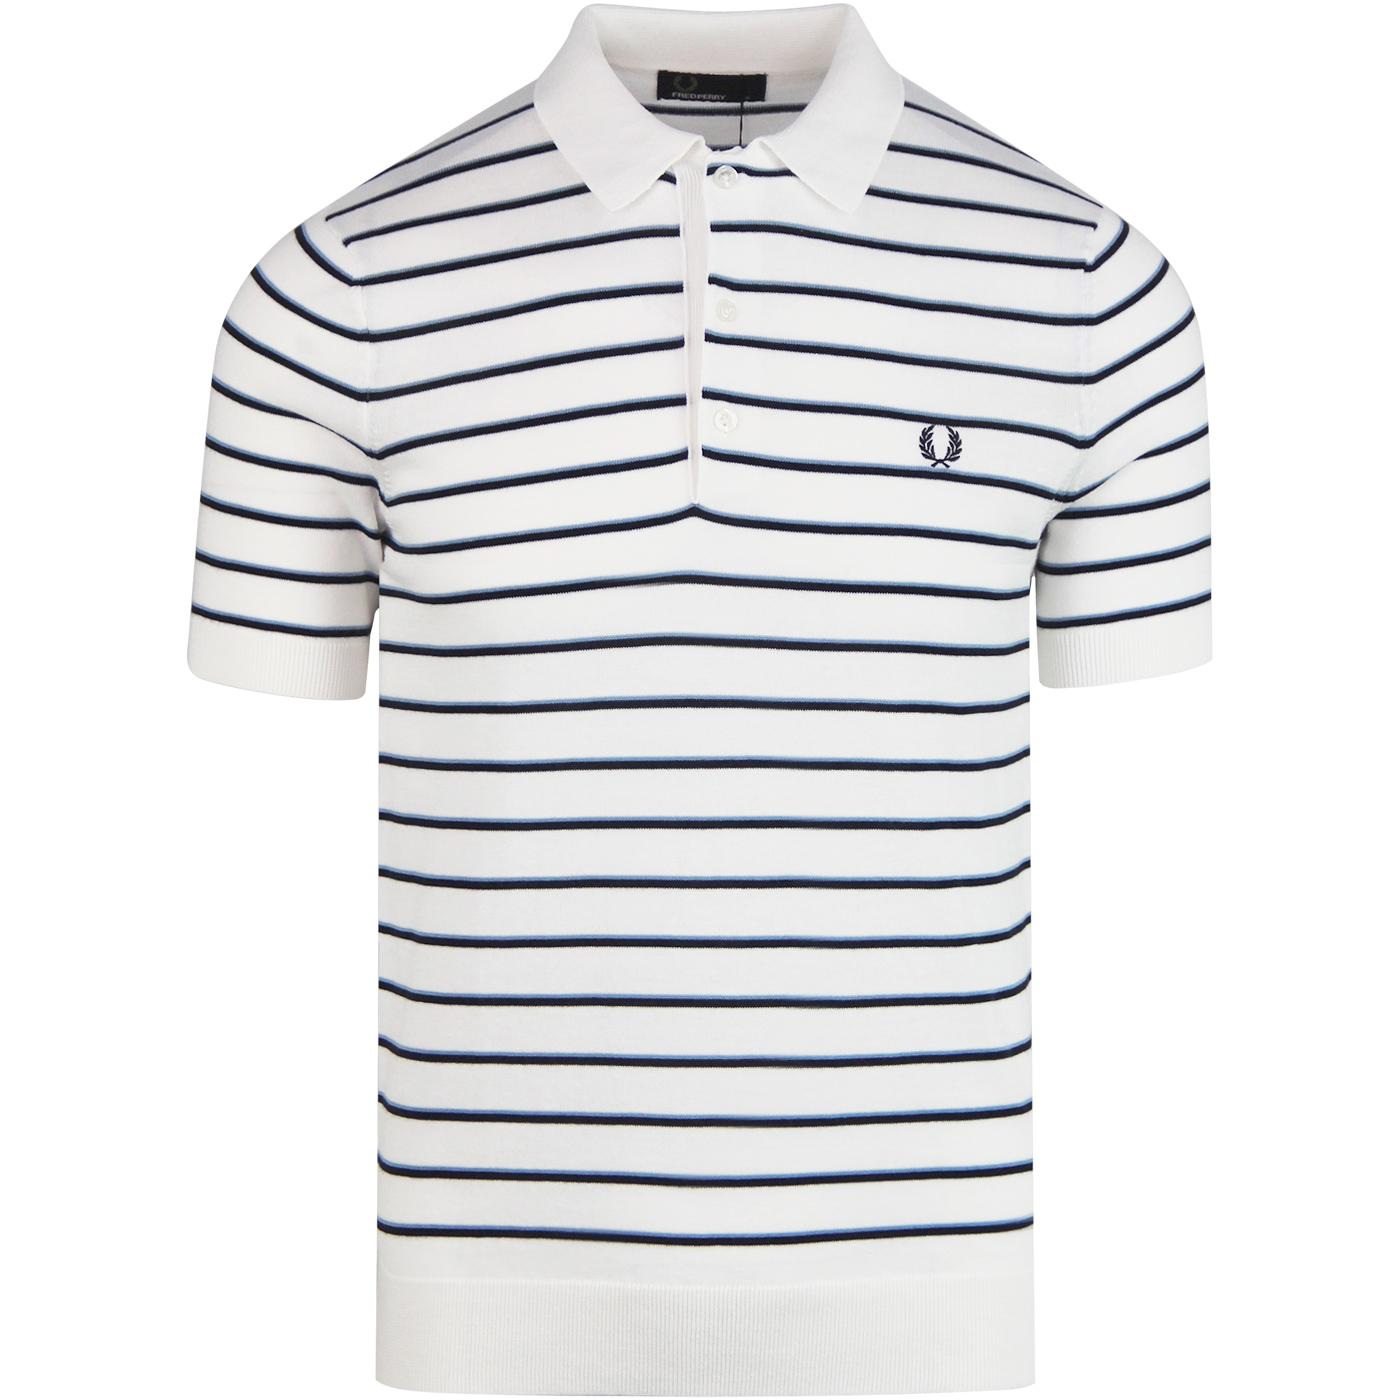 FRED PERRY Retro Mod Fine Stripe Knit Polo Top SW